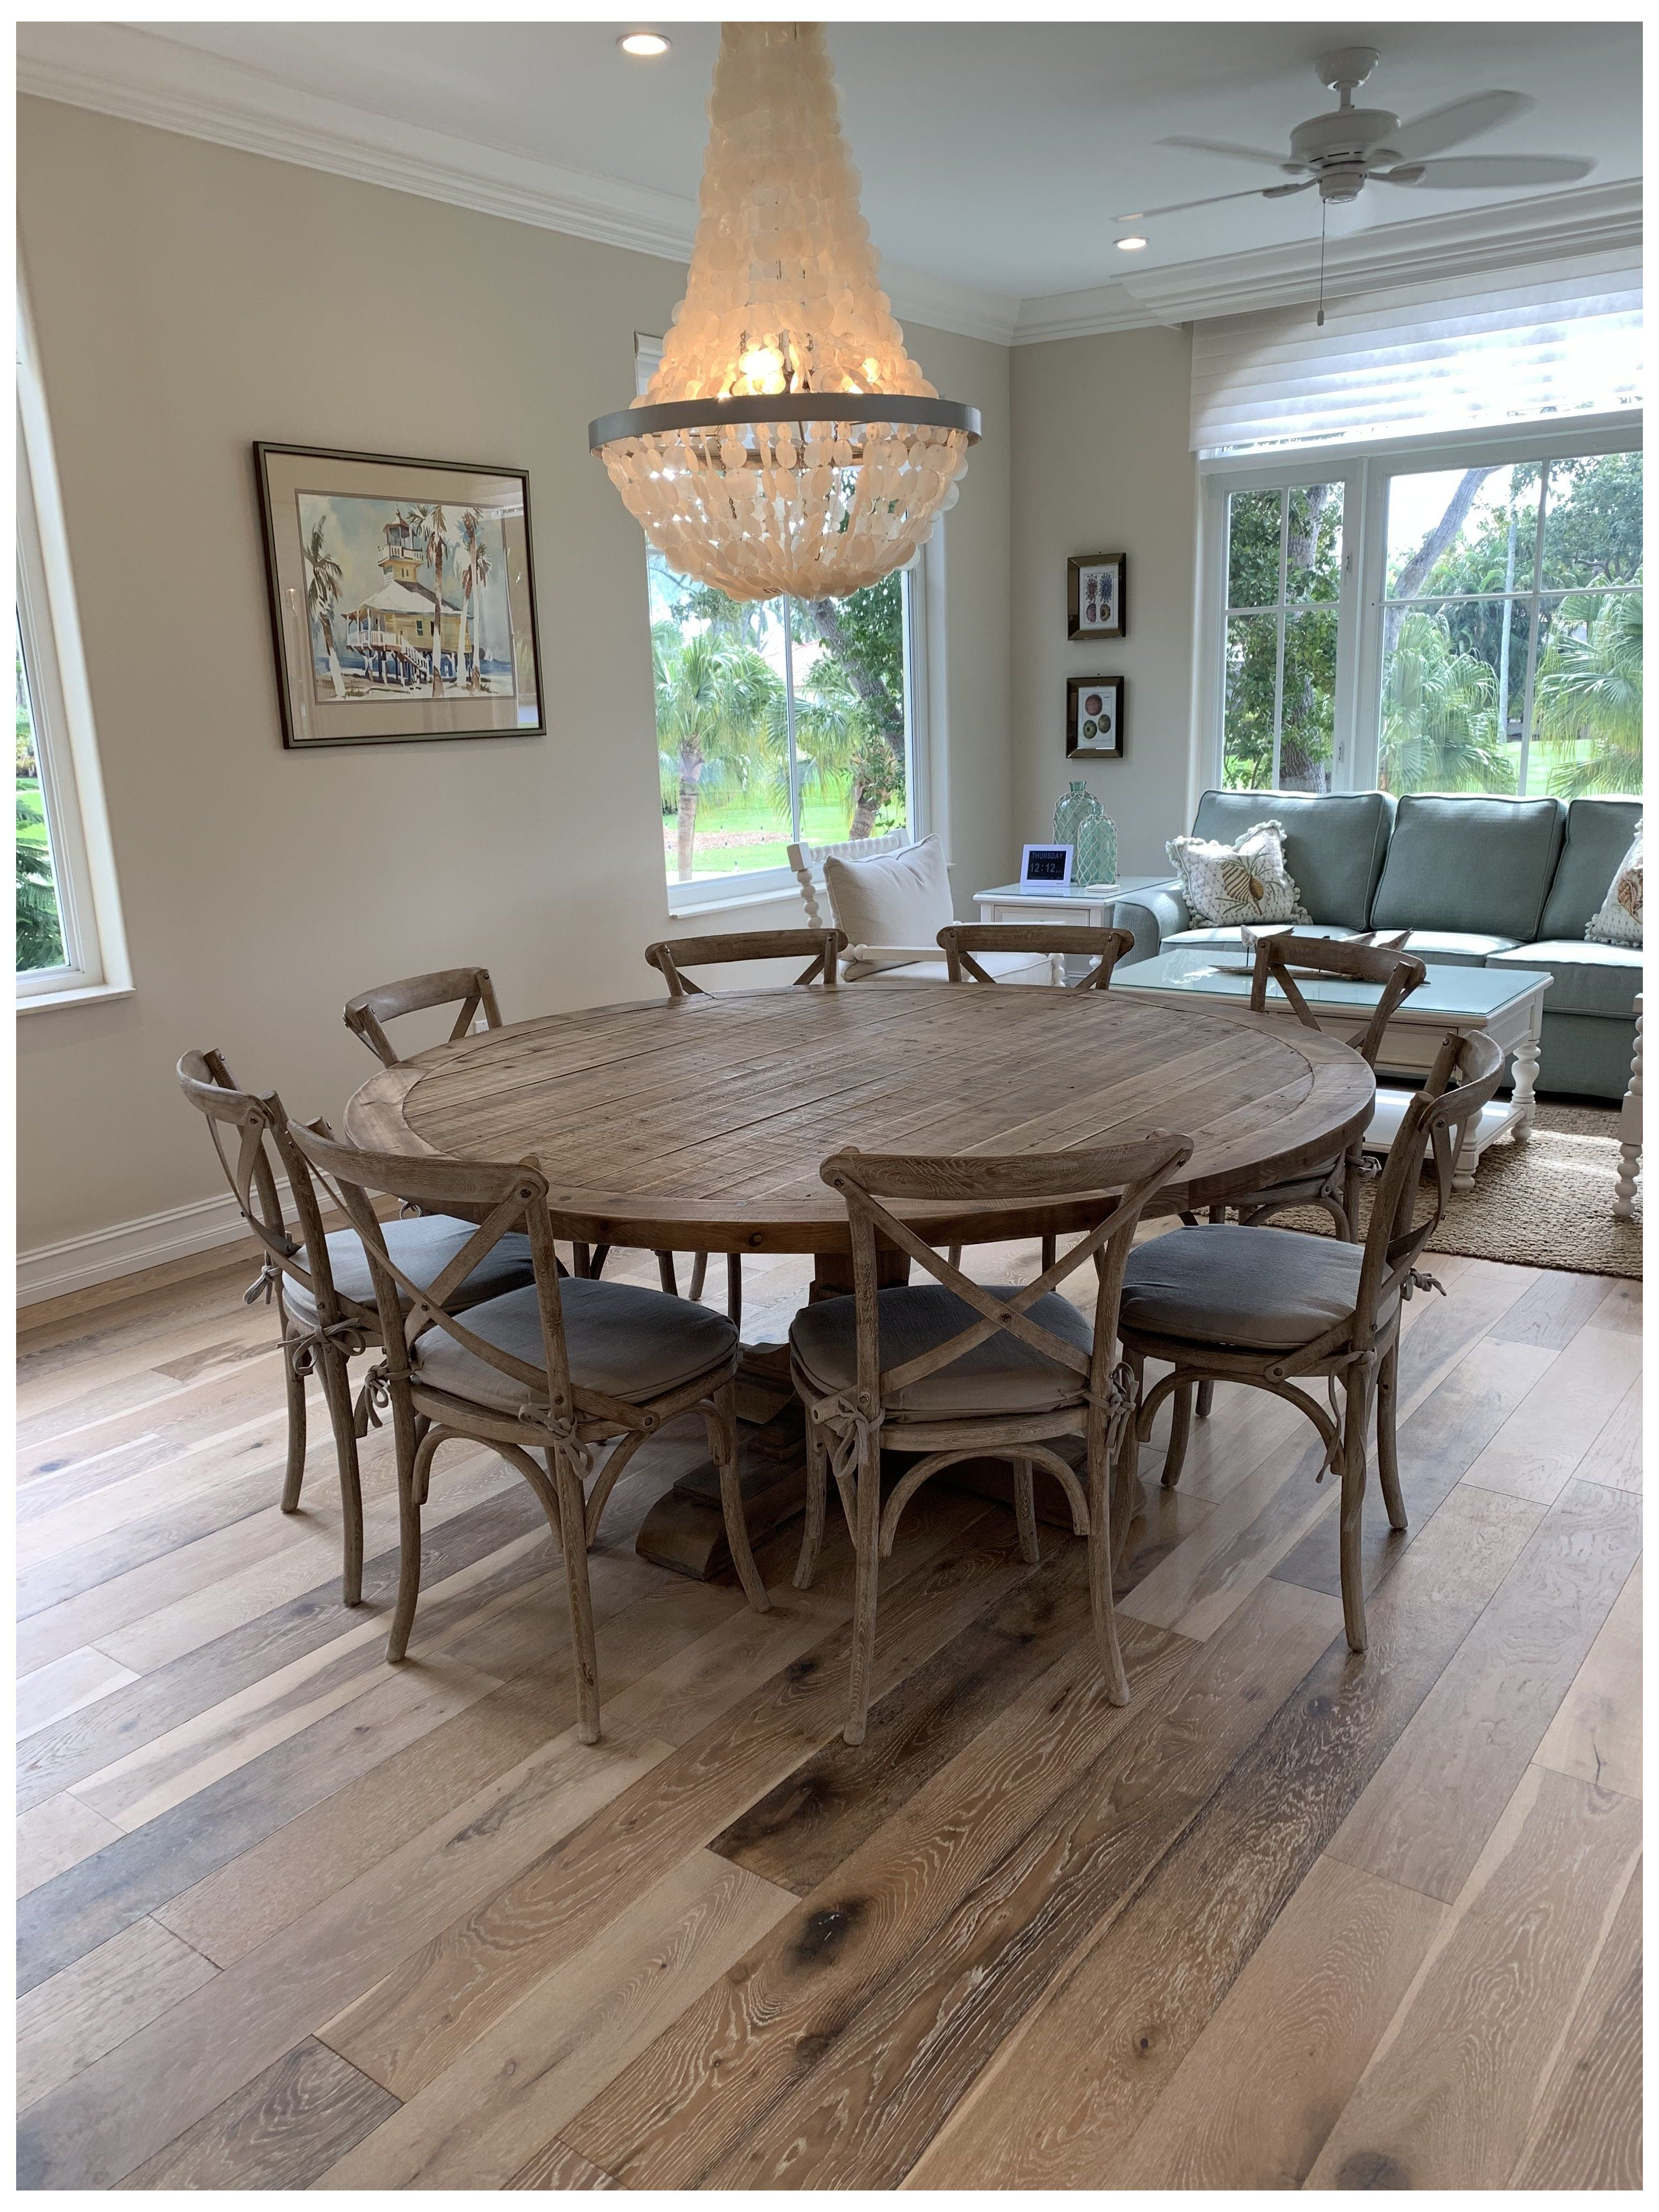 Dining Table Set For 8 Round Diningtablesetfor8round Round Dining Room Table Round Dining Room Sets Round Wooden Dining Table